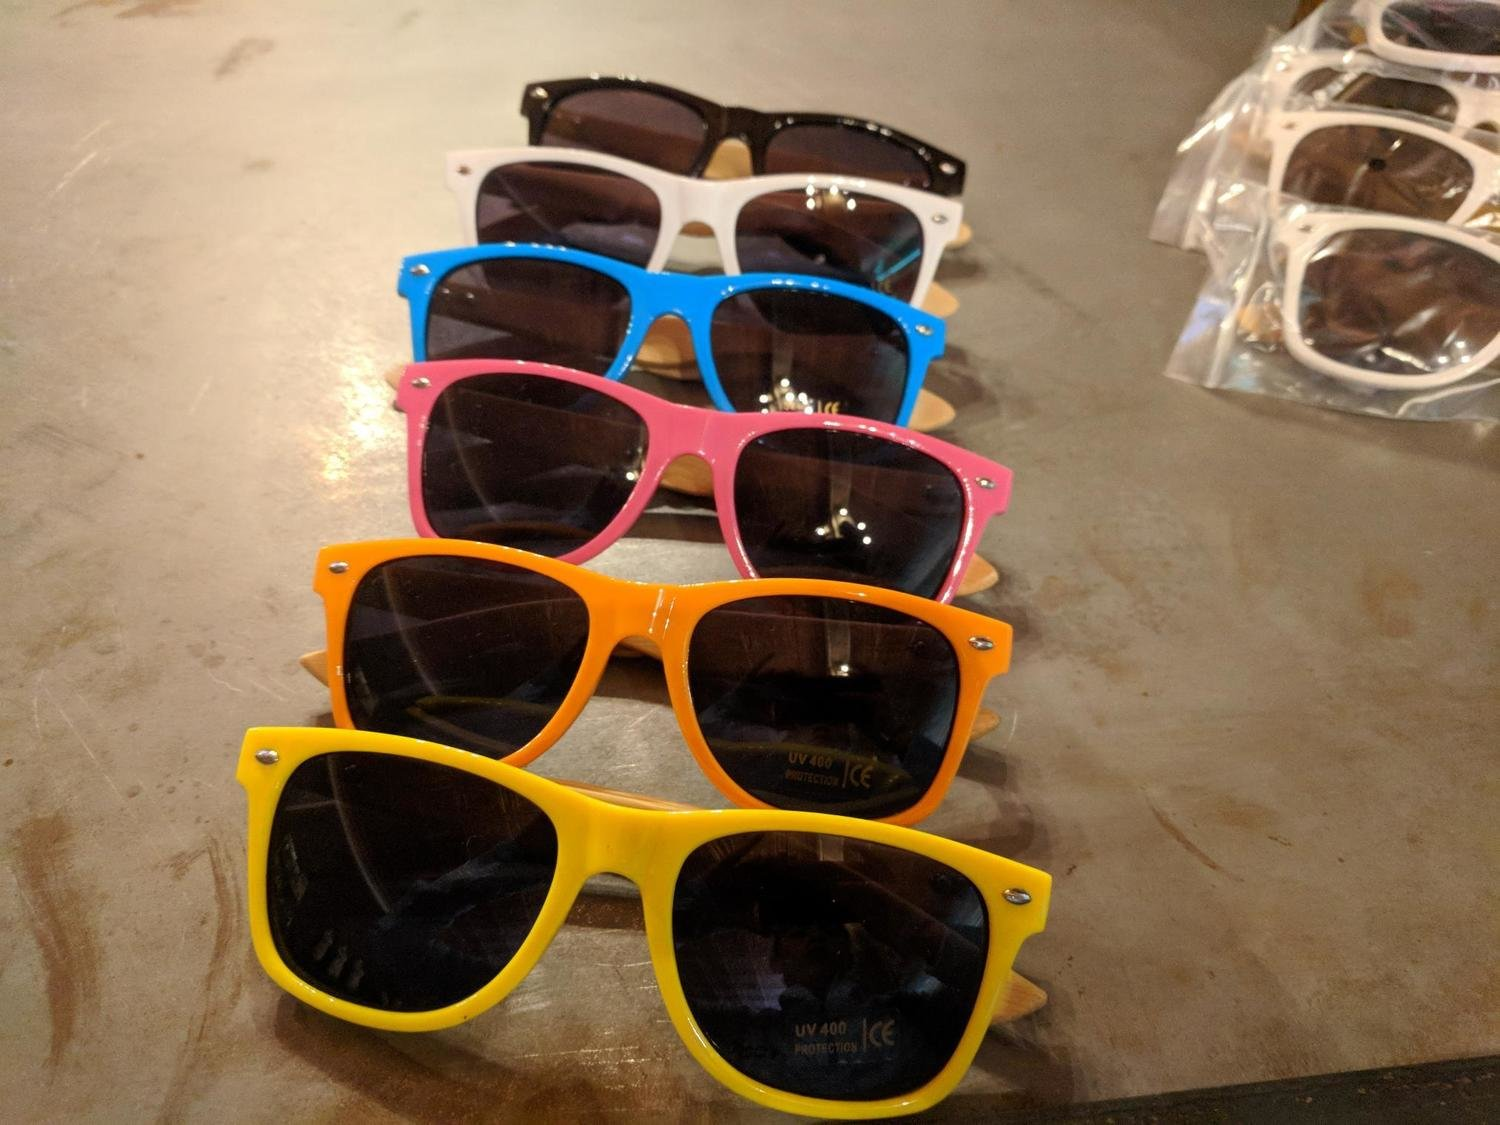 906 Sunglasses